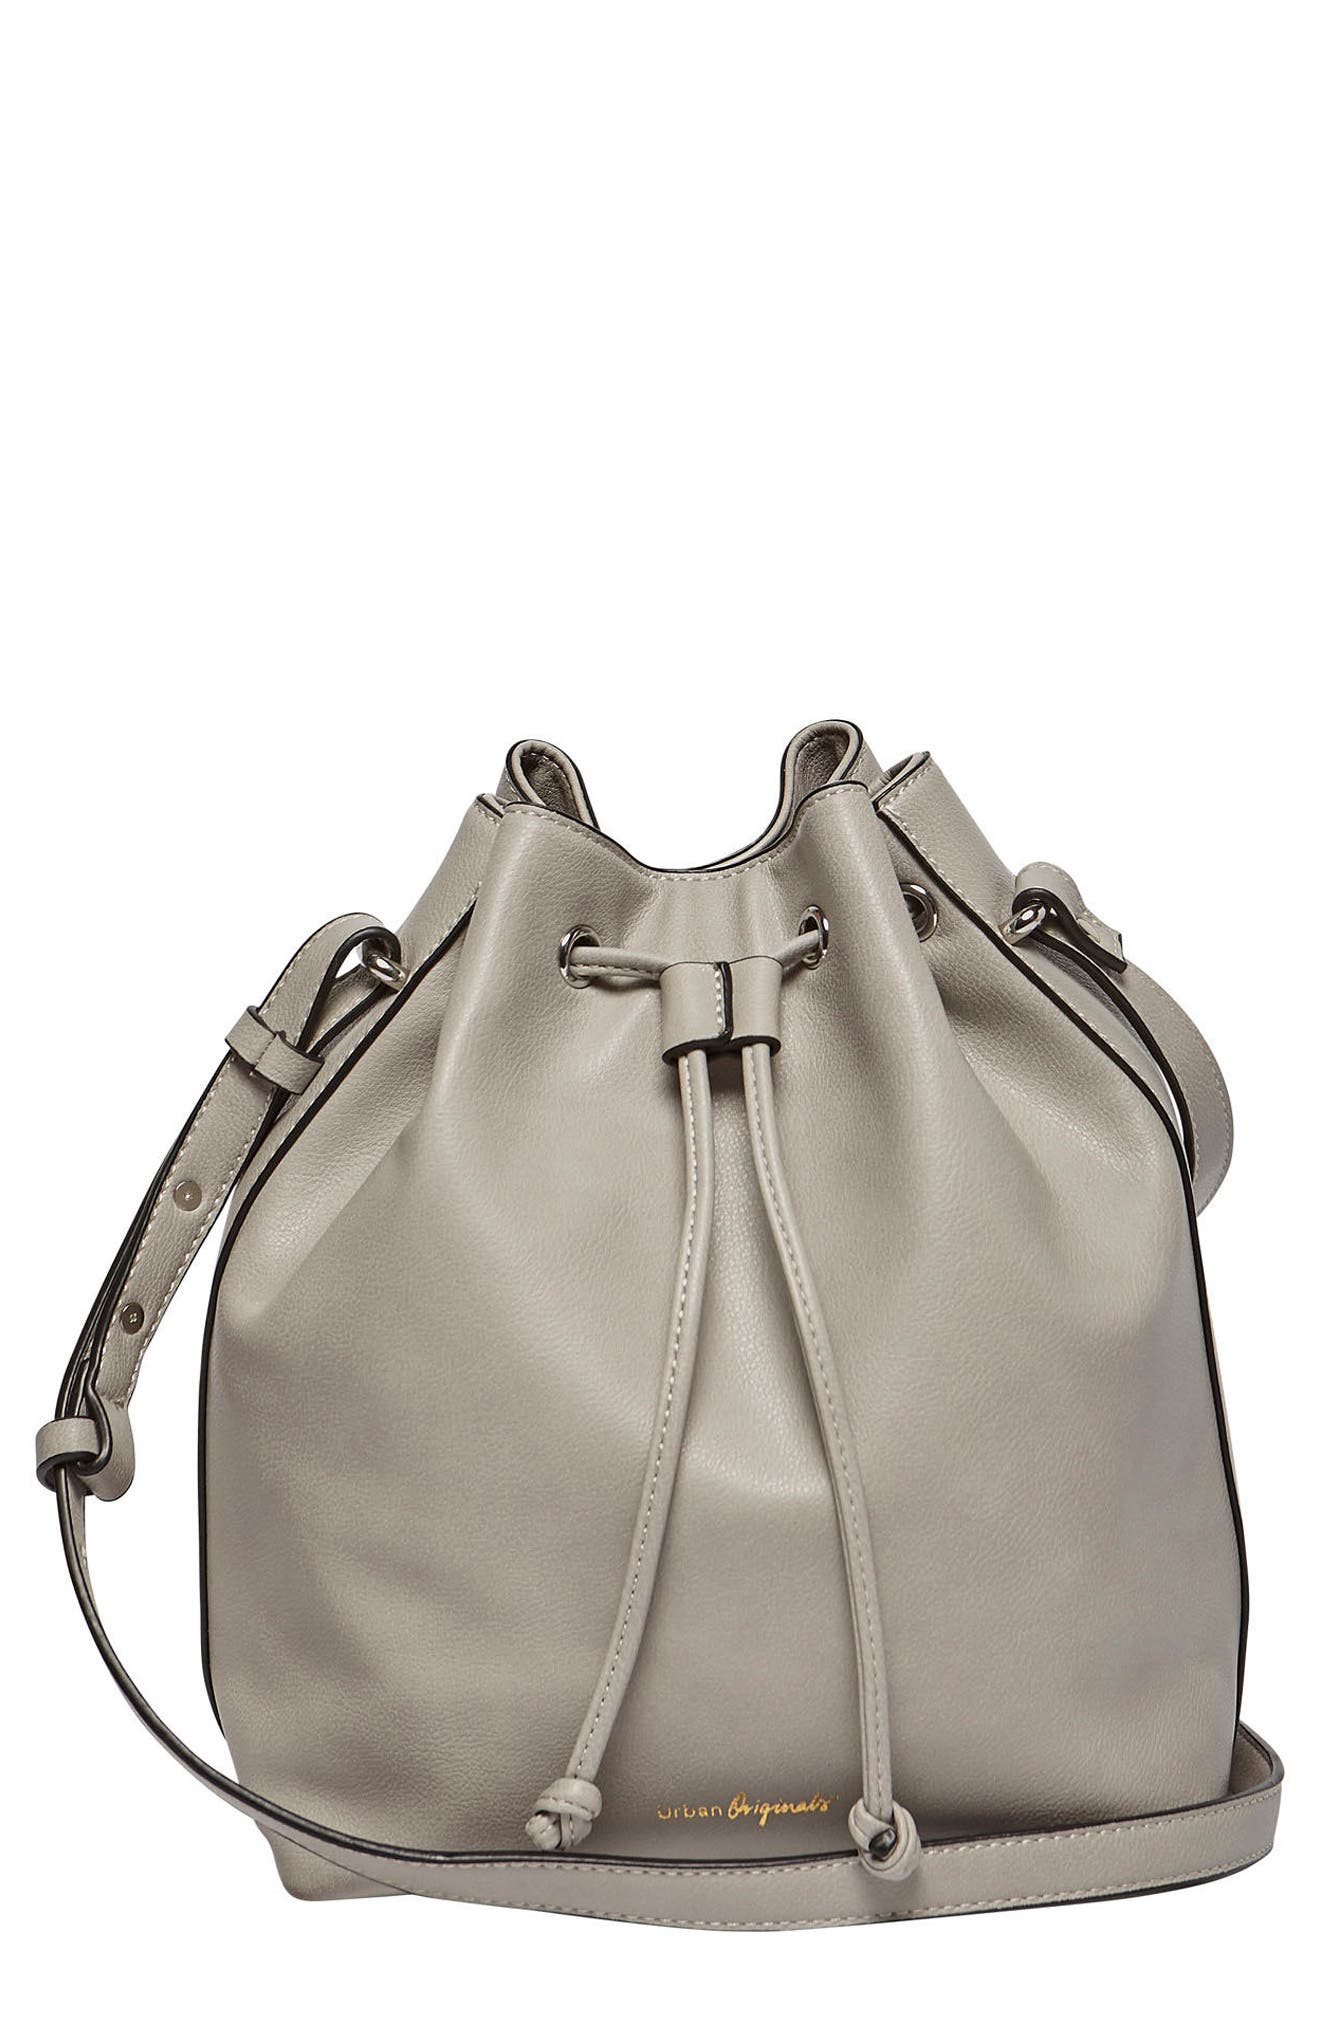 Take Me Home Vegan Leather Bag,                             Main thumbnail 1, color,                             Grey Battleship